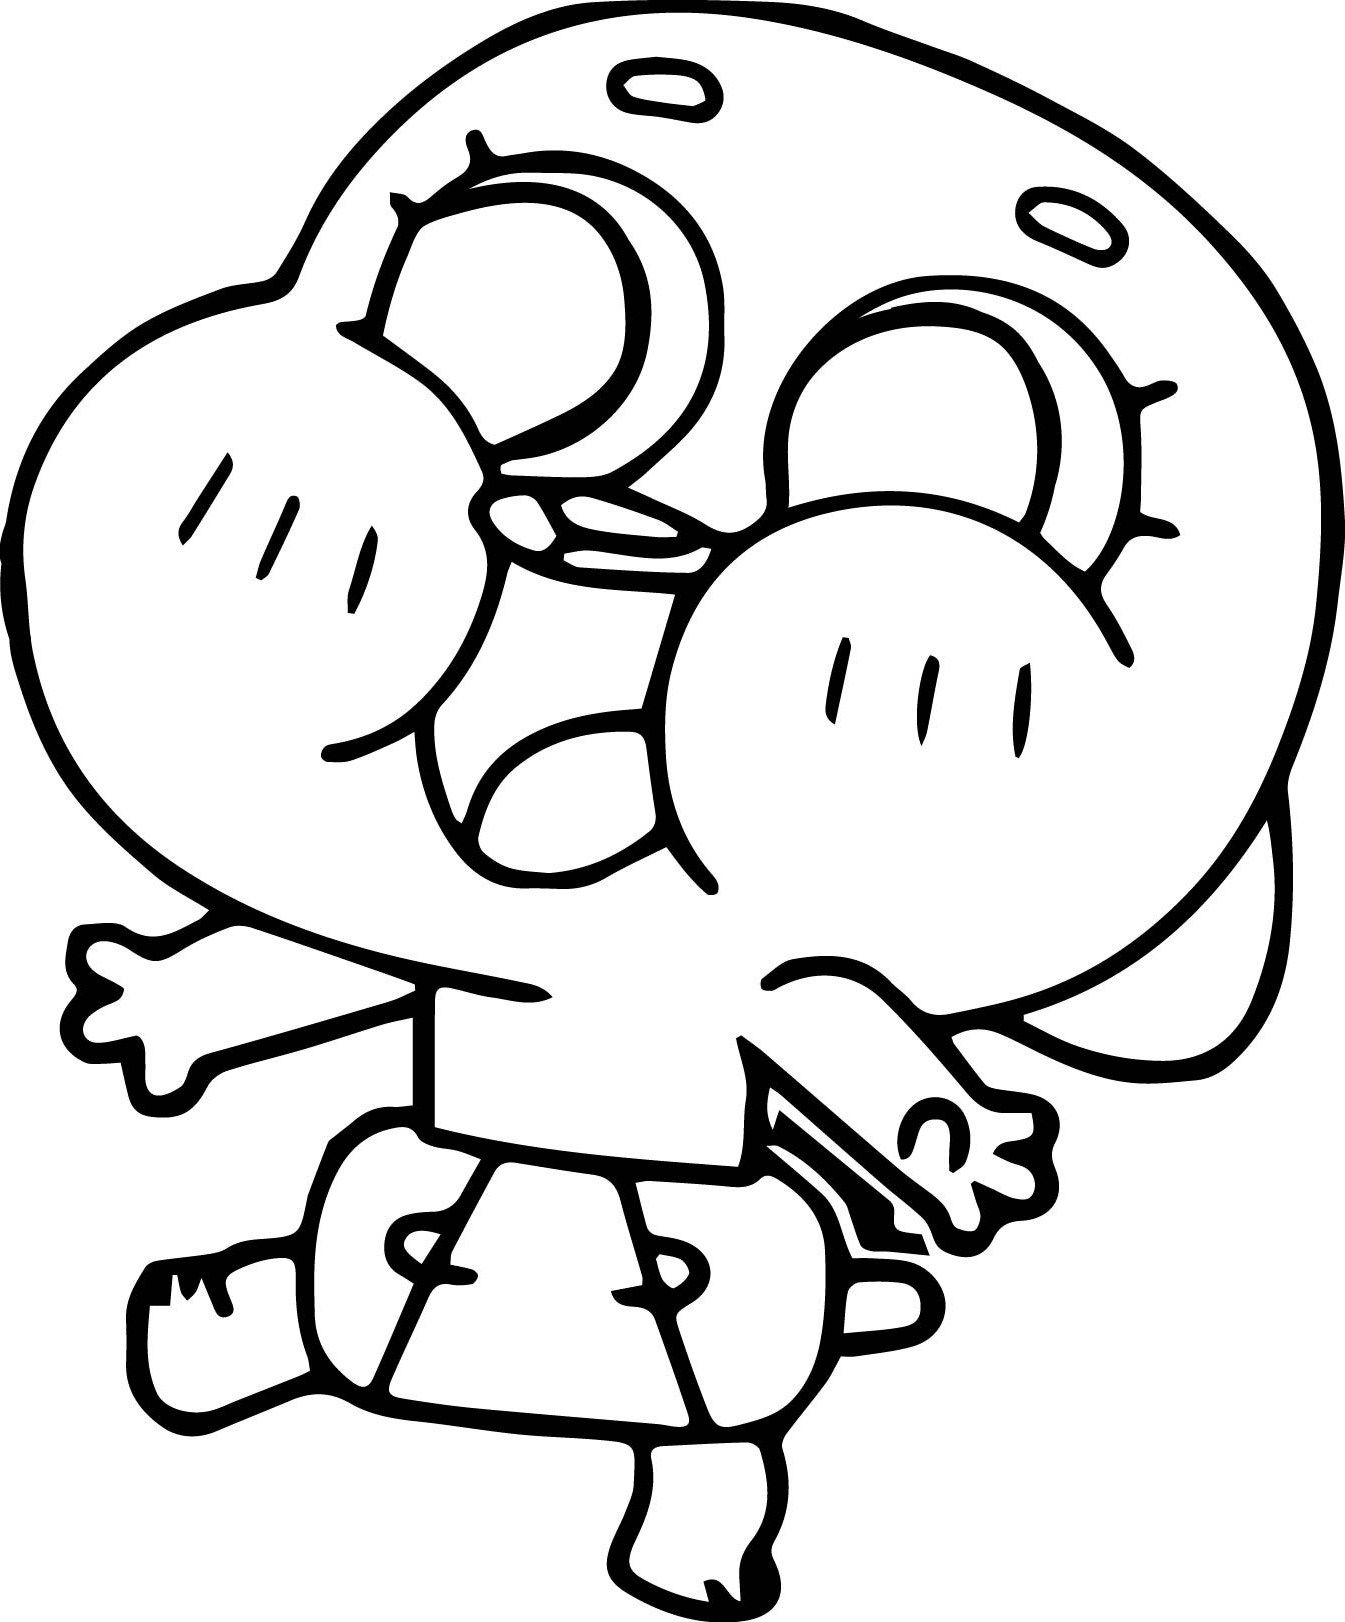 The Amazing World Of Gumball Coloring Pages For Kids The Amazing